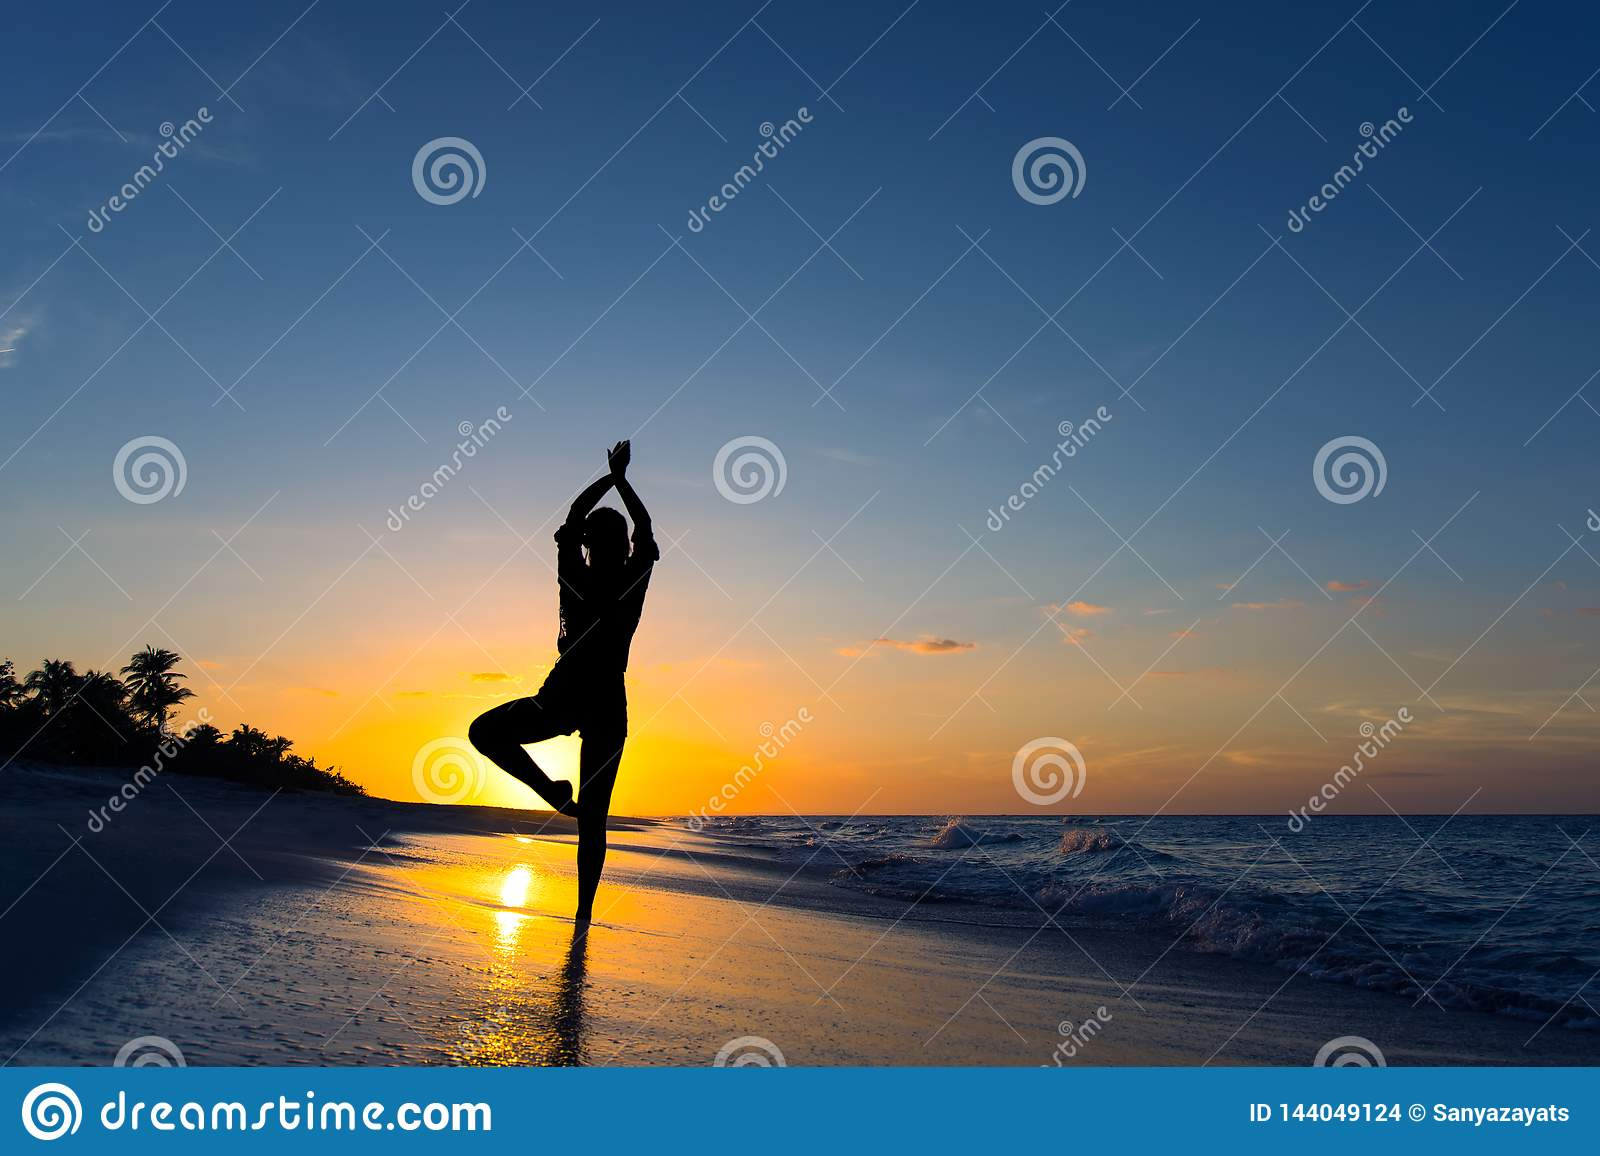 Yoga vrikshasana tree pose by woman in silhouette on the beach with sunset sky background. Free space for text.